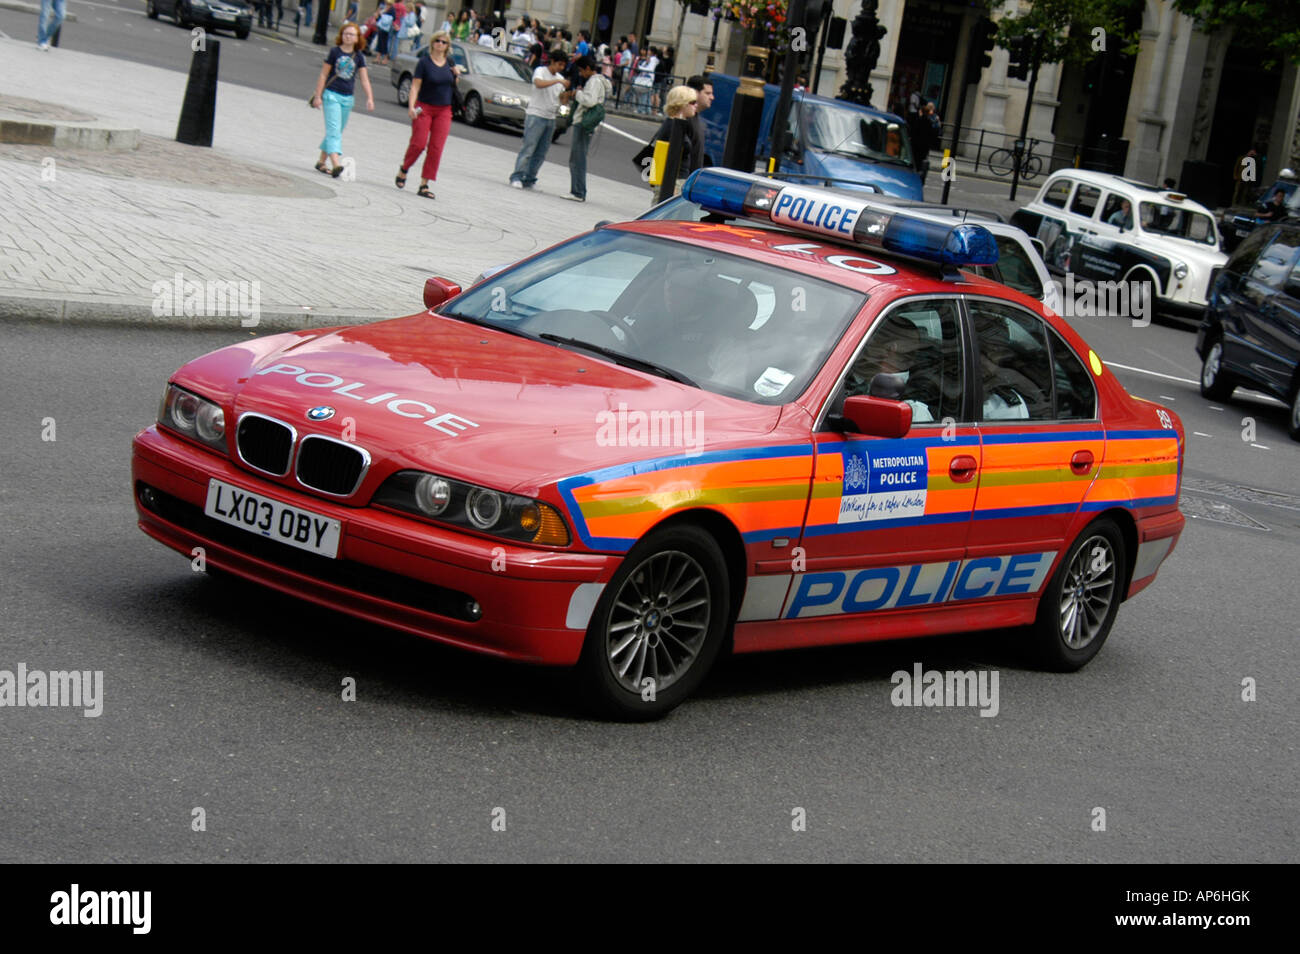 Exceptional Red Bmw Police Car Driving Through The City Of London, England